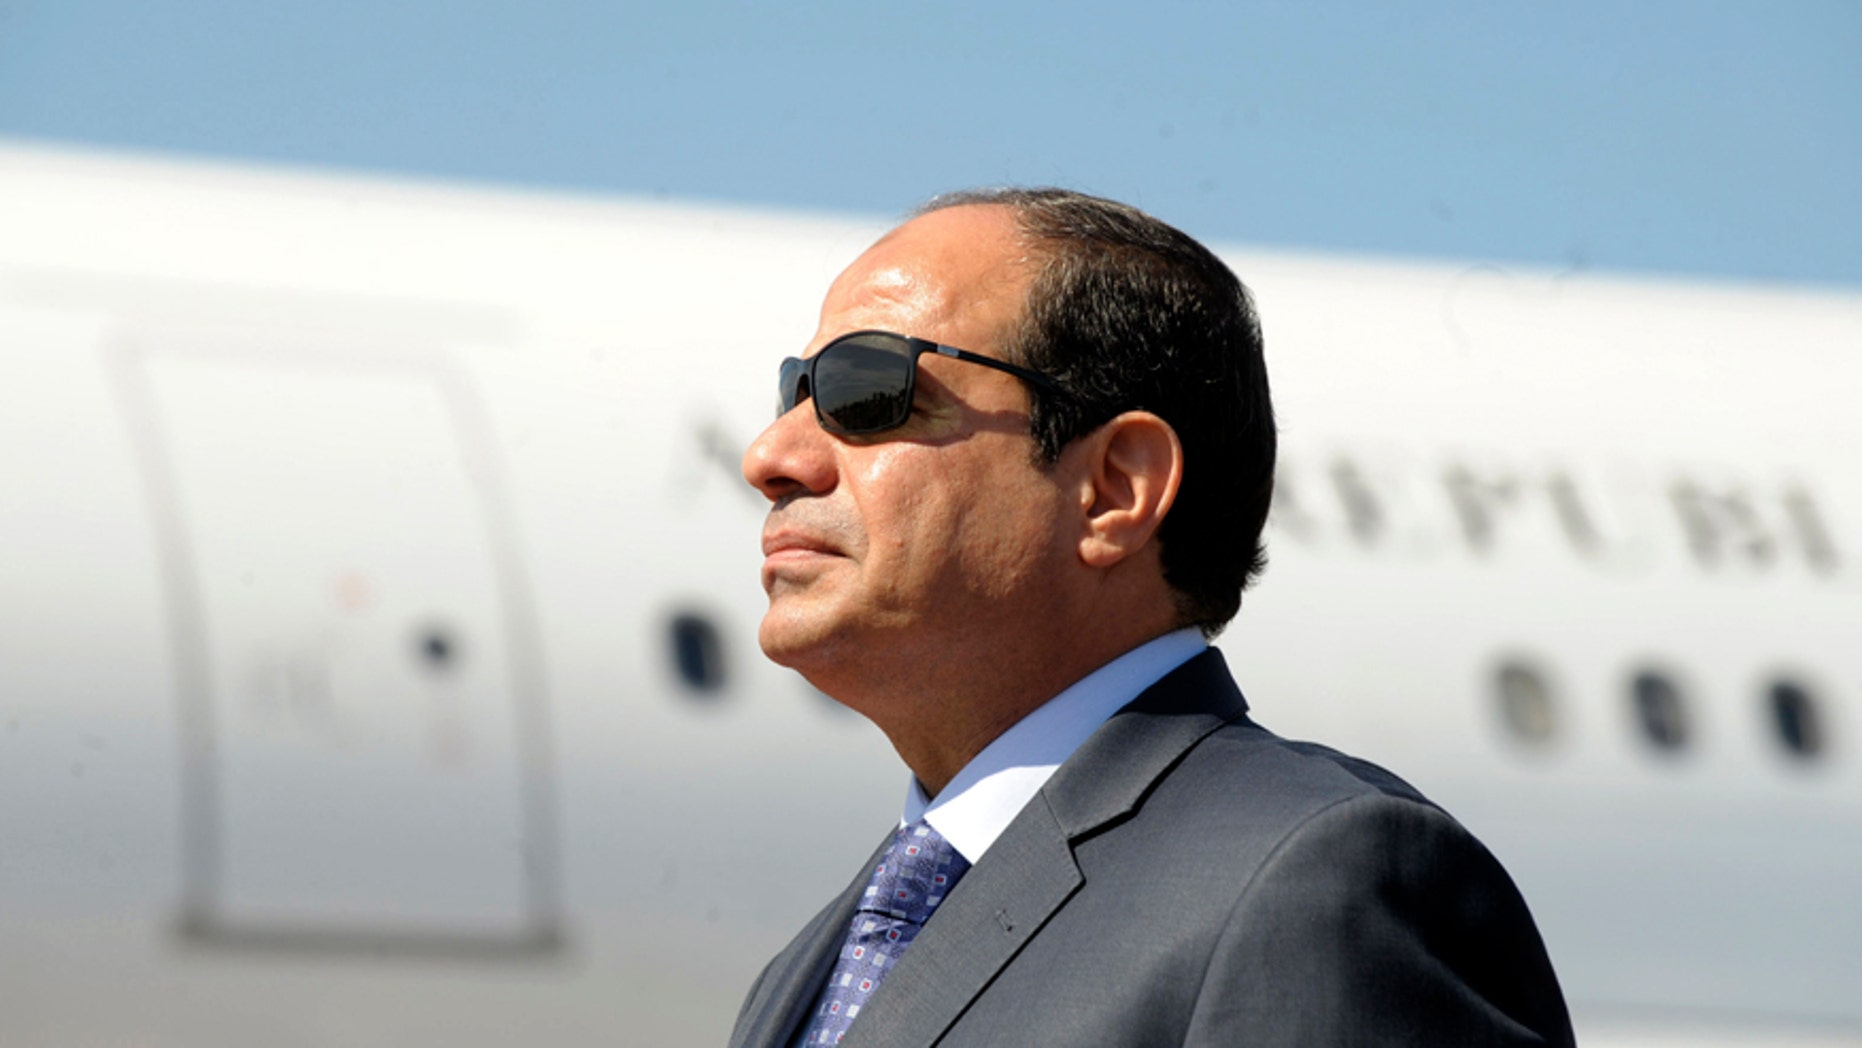 """FILE - In this June 25, 2014, file photo, Egyptian President Abdel-Fattah el-Sissi stands at Algiers airport on his arrival to Algiers, Algeria. News that Egypt's parliament speaker and his two deputies are using state funds to get cars worth hundreds of thousands of dollars has sparked a furor days after the president said Egypt was """"poor, very, very poor."""" (AP Photo/Sidali Djarboub, File)"""